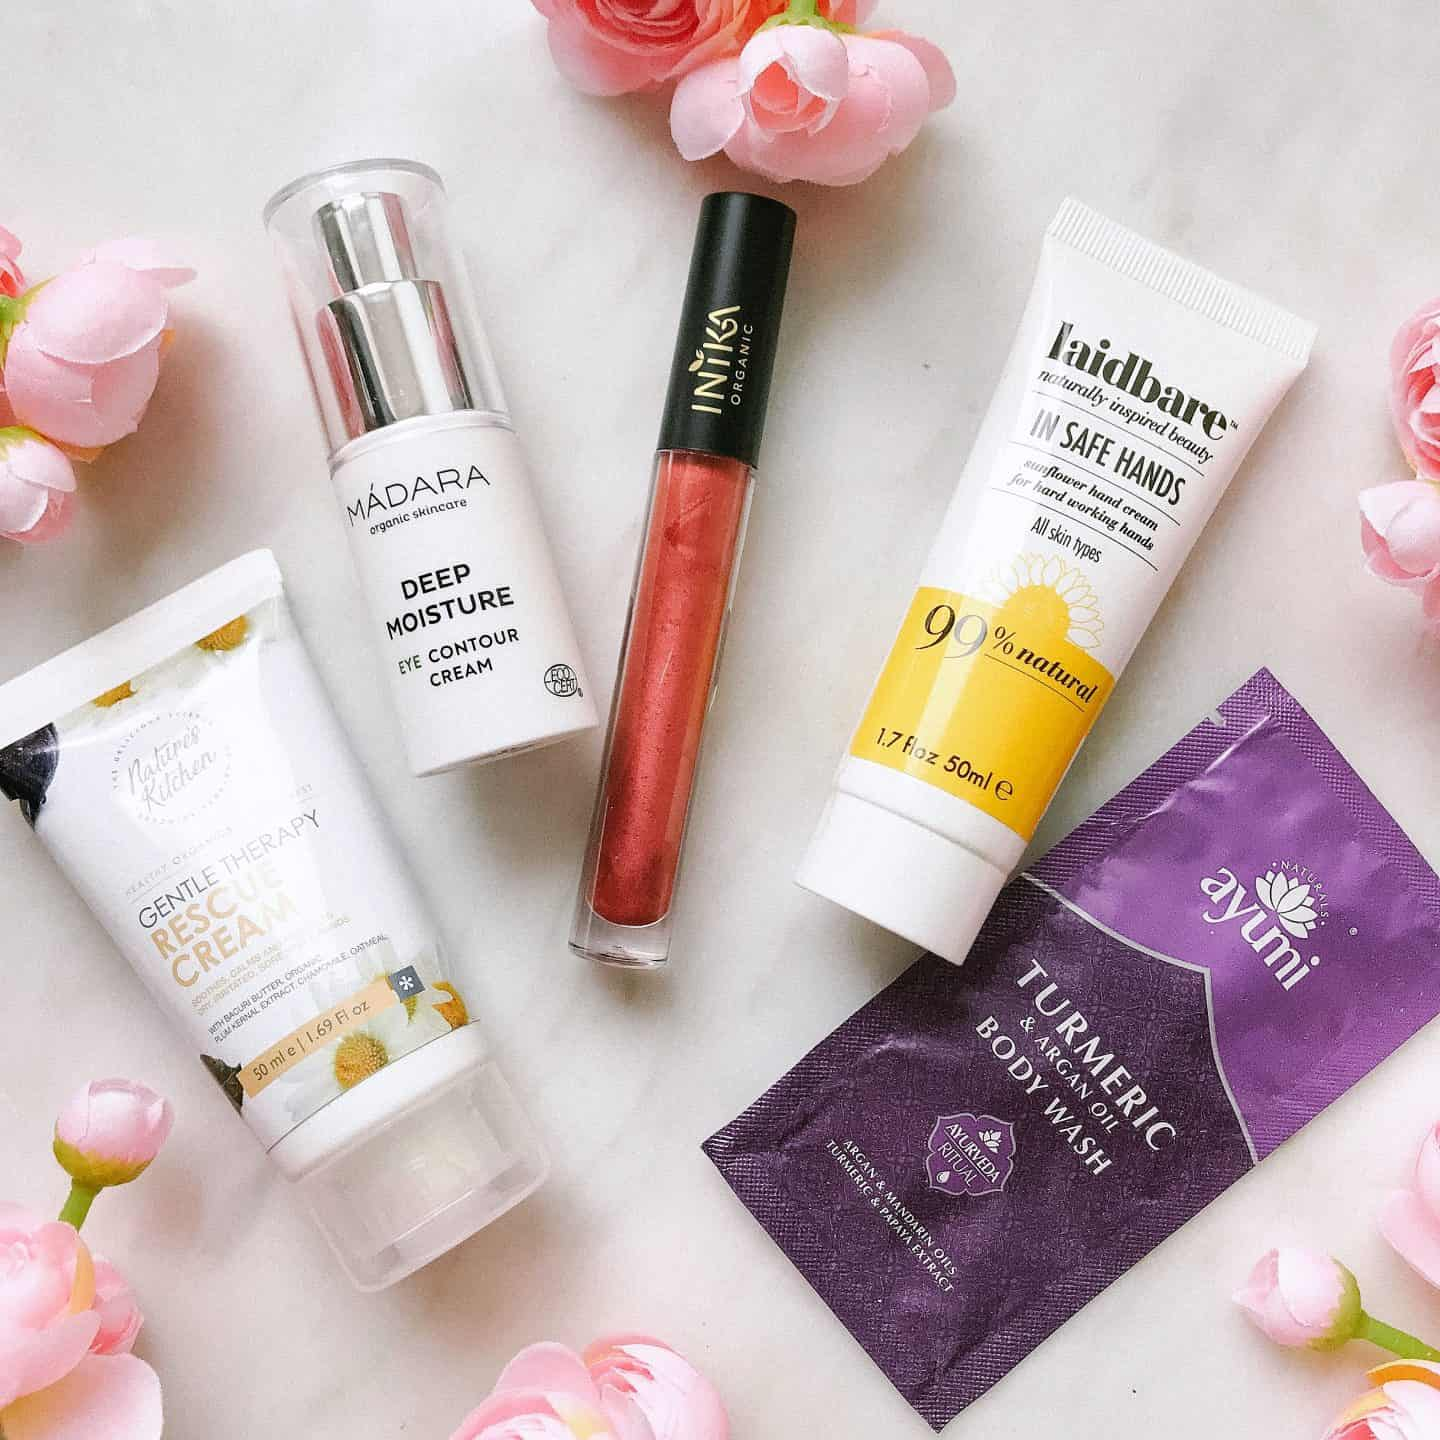 August Love Lula Natural Beauty Box contents